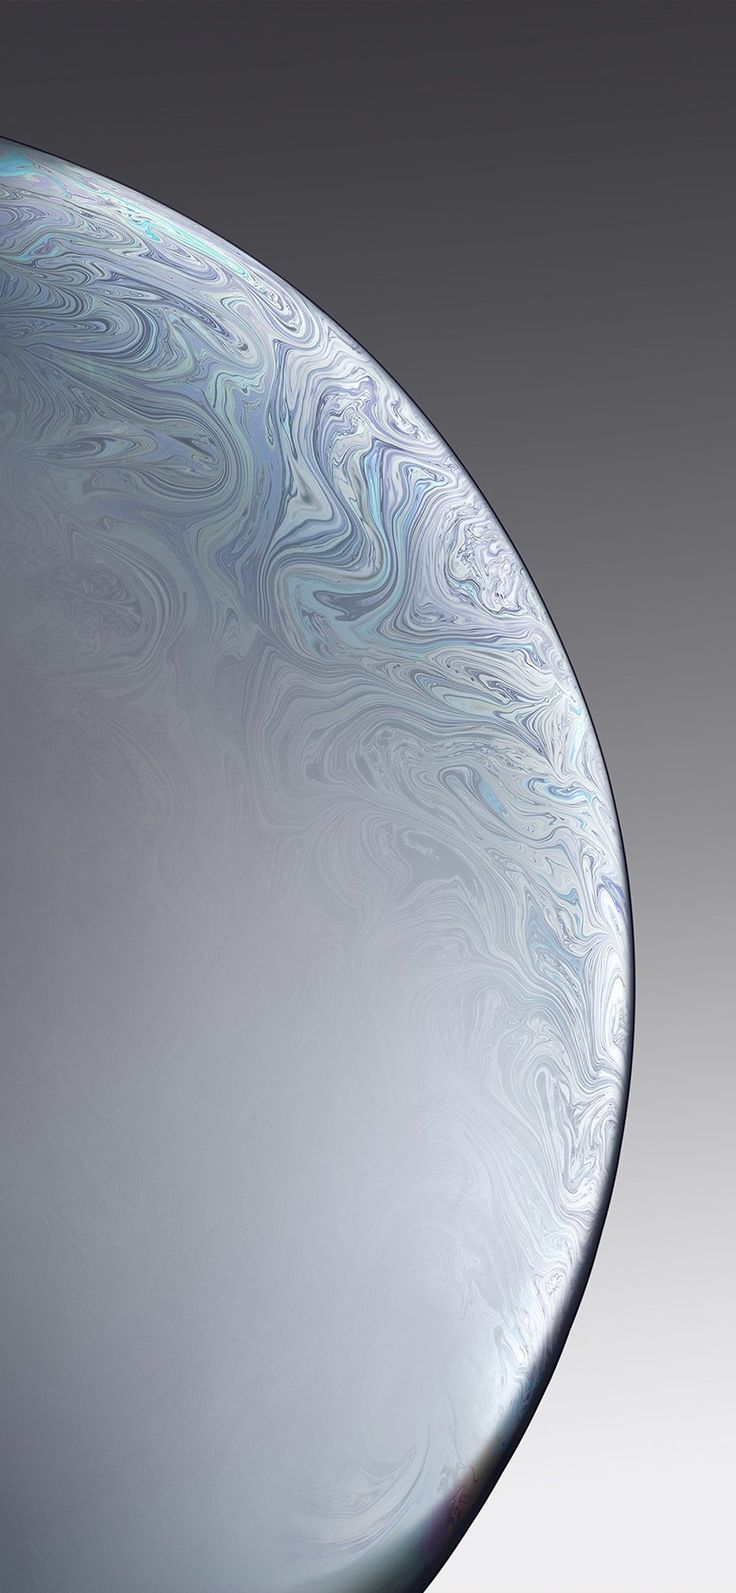 Iphonexpapers Com Iphone X Wallpaper Bg40 Apple Iphone Xs Space Official Art Gray White Bubbl Grey Wallpaper Iphone Apple Wallpaper Iphone Iphone Wallpaper